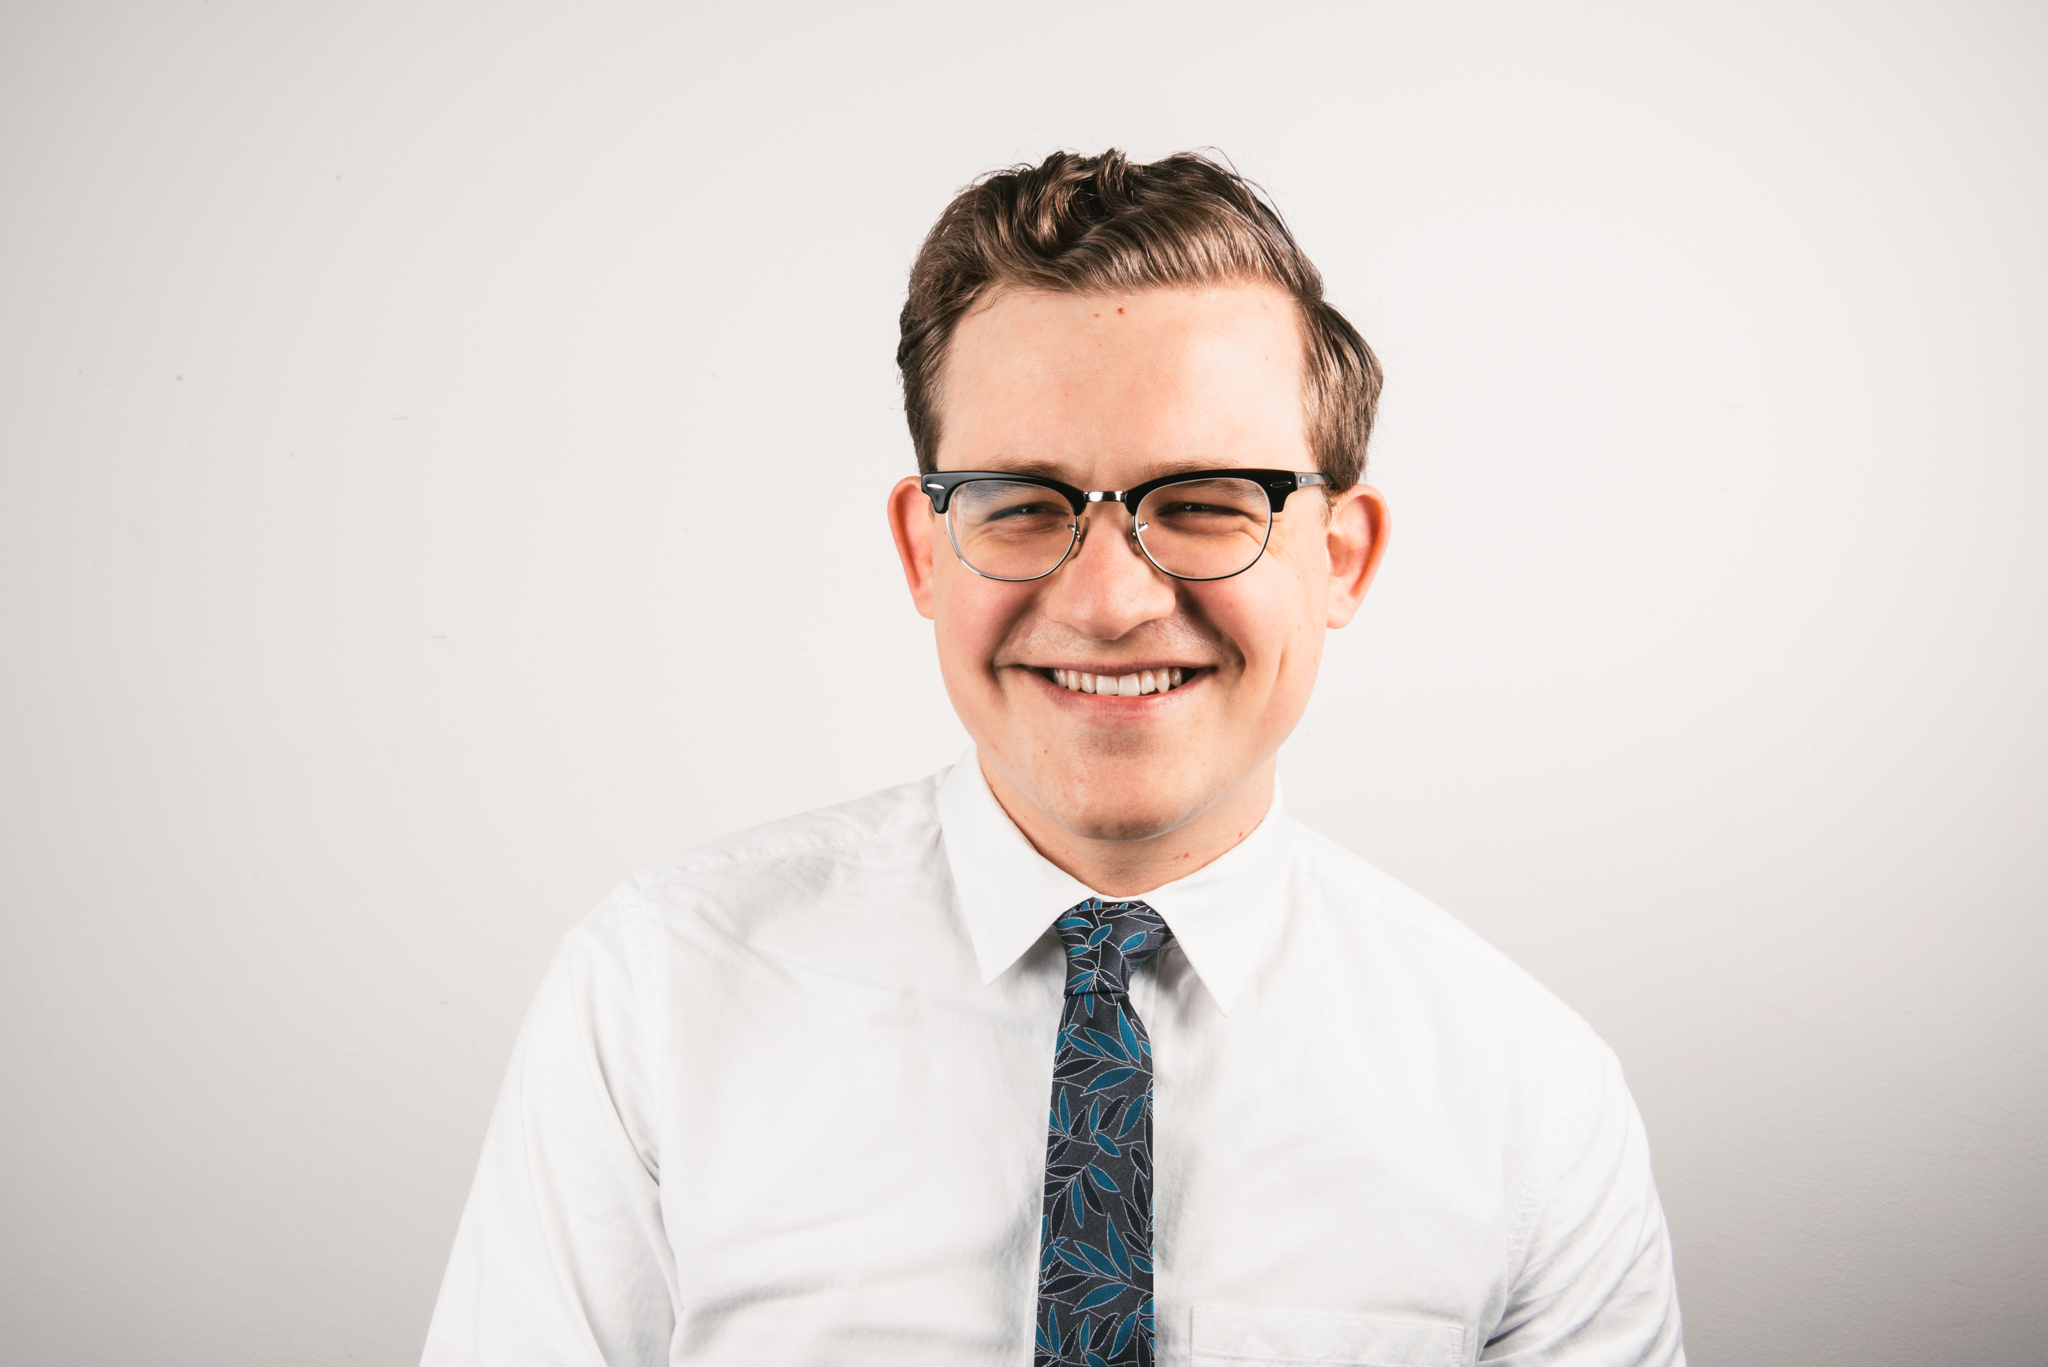 Joshua Vickery, Articling Student with Kelly Santini LLP